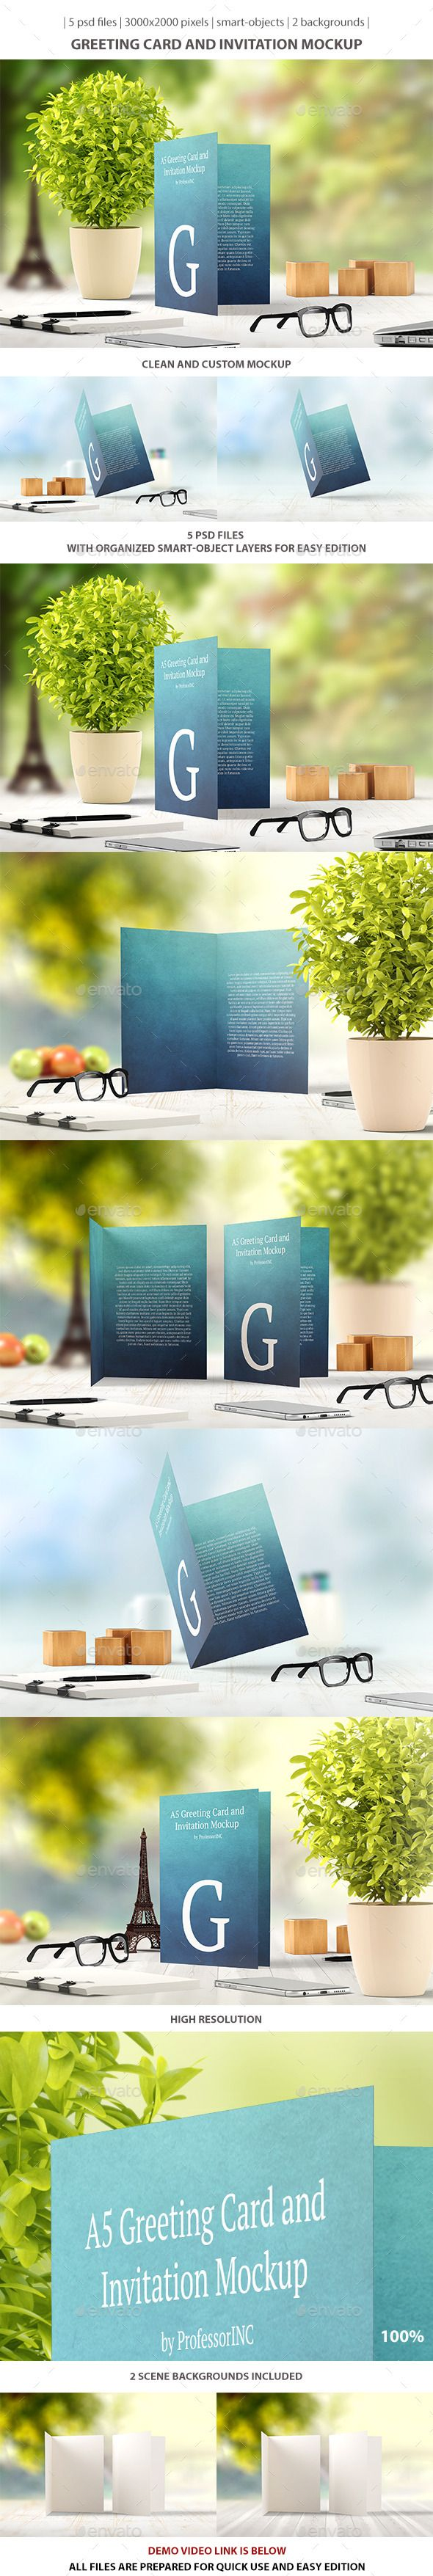 greeting card and invitation mockup download httpgraphicrivernet